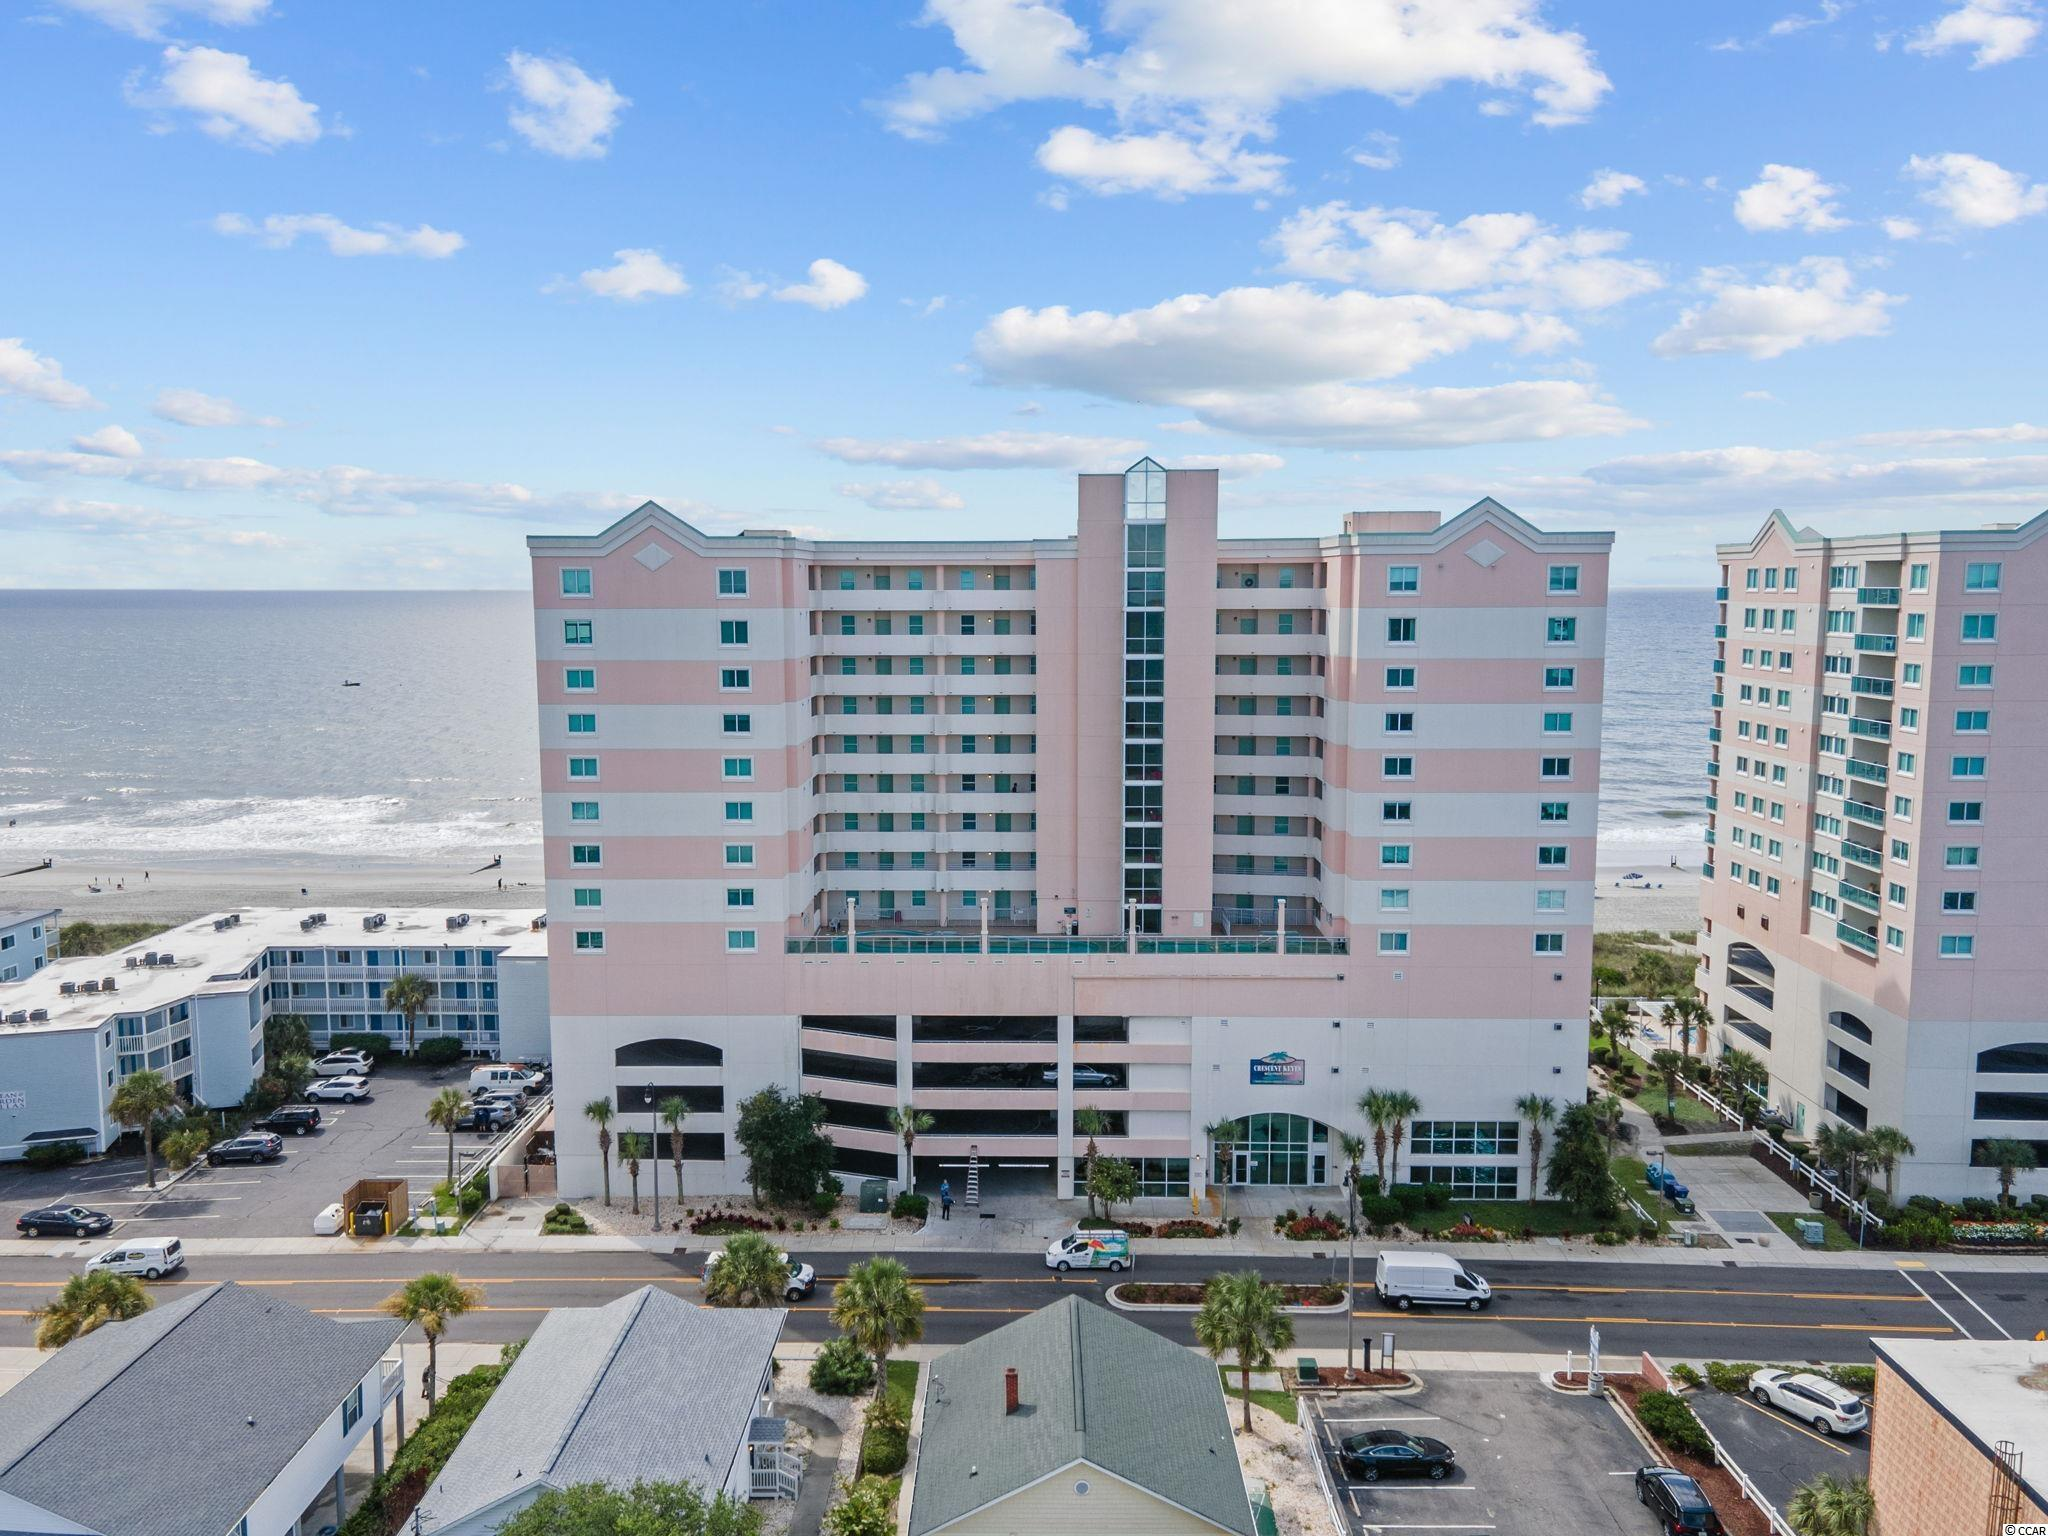 Fantastic three bedroom unit at Crescent Keyes in North Myrtle Beach.  Prime oceanfront location on the 11th floor with sweeping views of the Atlantic Ocean.  Spacious feel in this expansive unit that's perfect for a second home getaway spot or a cash flowing investment property with a strong rental history.  As you enter the unit, two secondary bedrooms are located on either side.  Both have access to a hall bath with vanity and walk in shower.  The heart of the unit is the large open kitchen with plenty of cabinet and counter space.  A large bar offers a great space to share meals and enjoy each others company.  Most appliances were replaced in 2019 with Samsung stainless steel models.  Beautiful granite countertops and white cabinetry complete the space.  The living areas adjoins the kitchen with easy access to the large balcony.  The 11th floor location offers some of the best views of the oceanfront.  A sleeper sofa was just replaced and allows for additional sleeping space for guests or family.  The master bedroom is sizeable with plenty room to relax and take in the excellent ocean view.  Balcony access is at your fingertips.  An en-suite bath has a double vanity and large soaker tub.   The unit will currently accommodate a maximum of ten guests with sleeper sofa.  A tremendous added bonus of this unit is a brand new HVAC system was just installed and provides virtual worry free heating and cooling!  For added convenience, there's a unitized washer and dryer in the unit.  There is attached in building storage that goes with the unit for all of your beach equipment.  Crescent Keyes is packed with amenities the whole family will enjoy including indoor and outdoor pools, jacuzzi, and a lazy river on the 6th floor.  A full gym is even available on site.  A covered parking deck allows for easy access in and out of the building.  As an added security feature, all elevator lobby doors and entry points require keyed access.  Crescent Keyes is a wonderful complex with